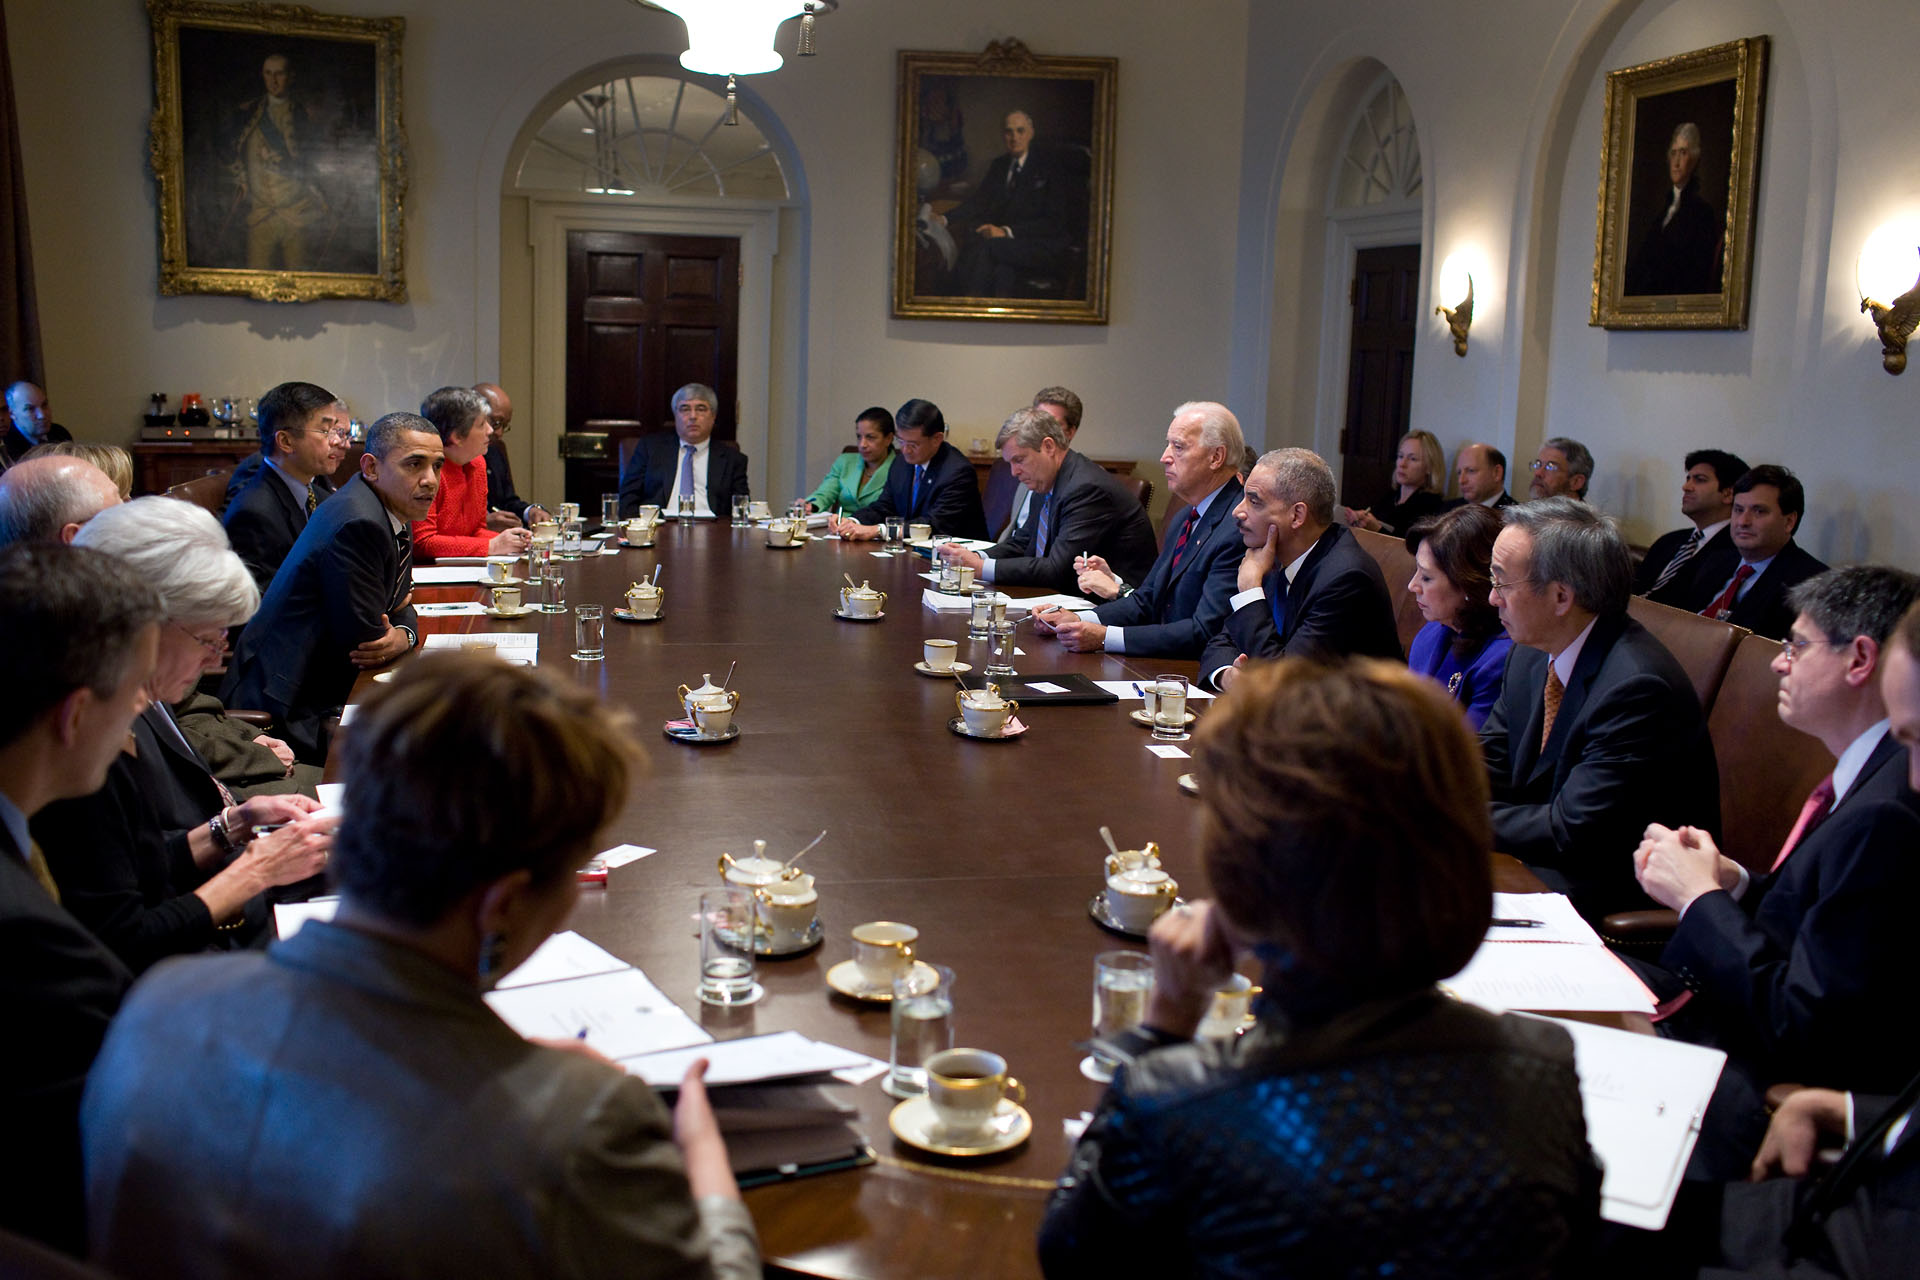 Obama And Cabinet President Obama Holds A Cabinet Meeting In Photos Whitehousegov